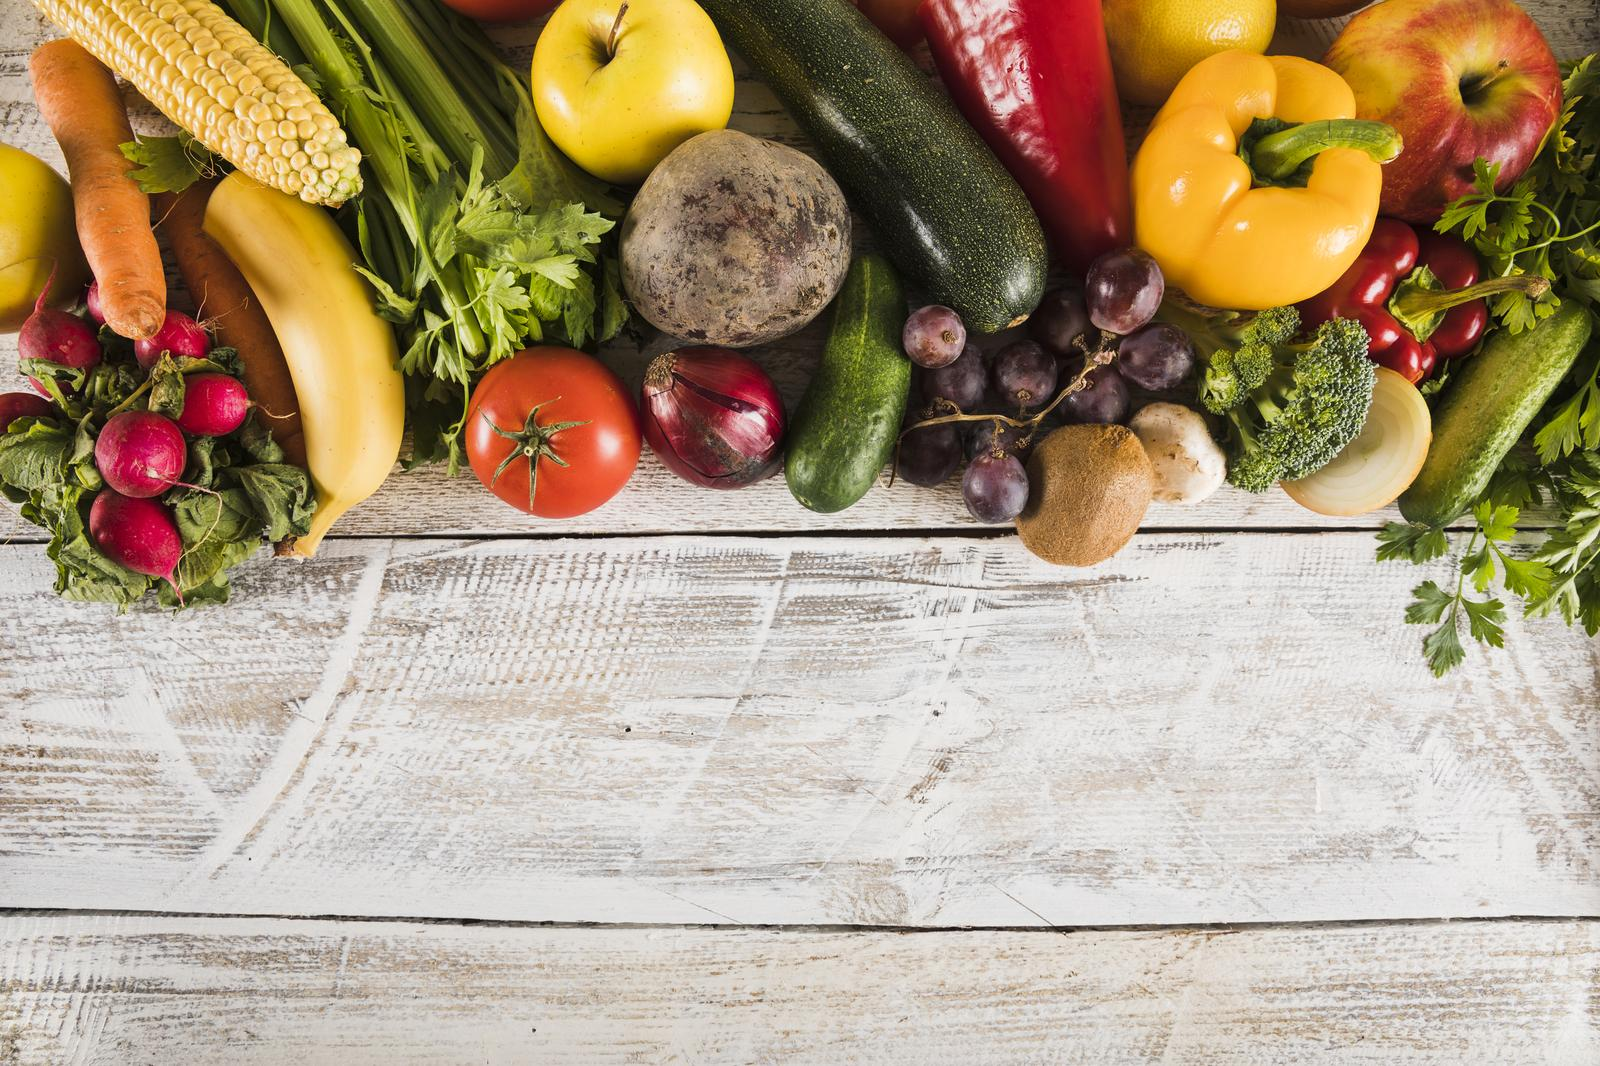 Retail sale of fruit and vegetables in specialised stores in Tallinn